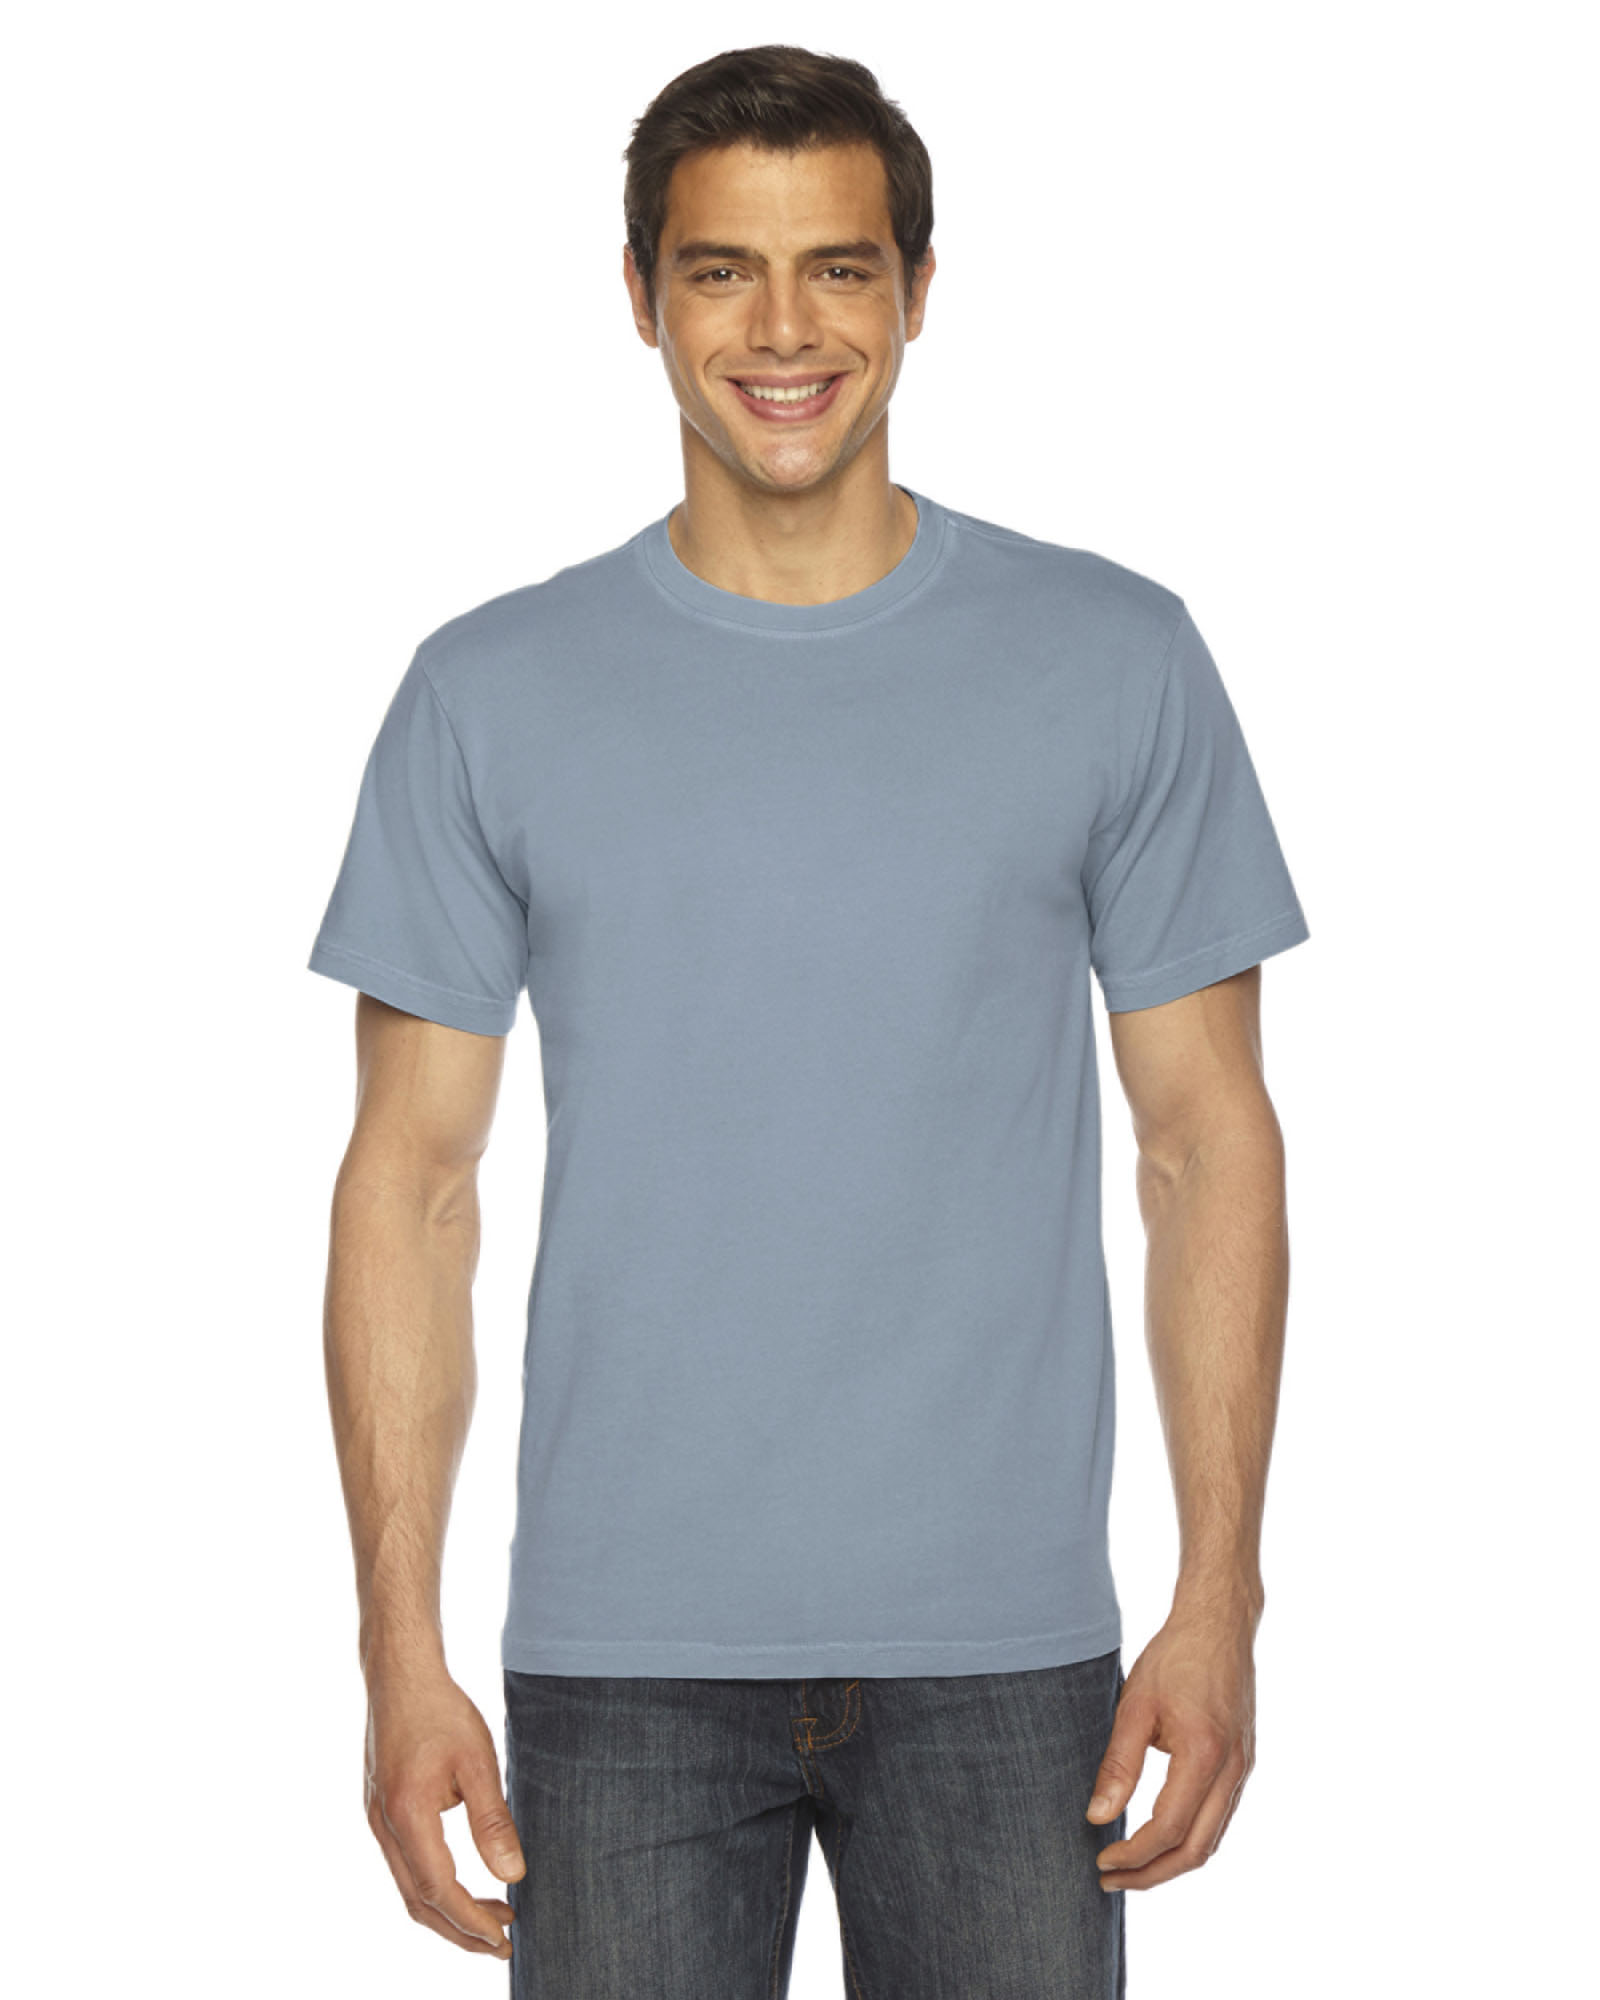 Authentic Pigment AP200 - Men's XtraFine T-Shirt